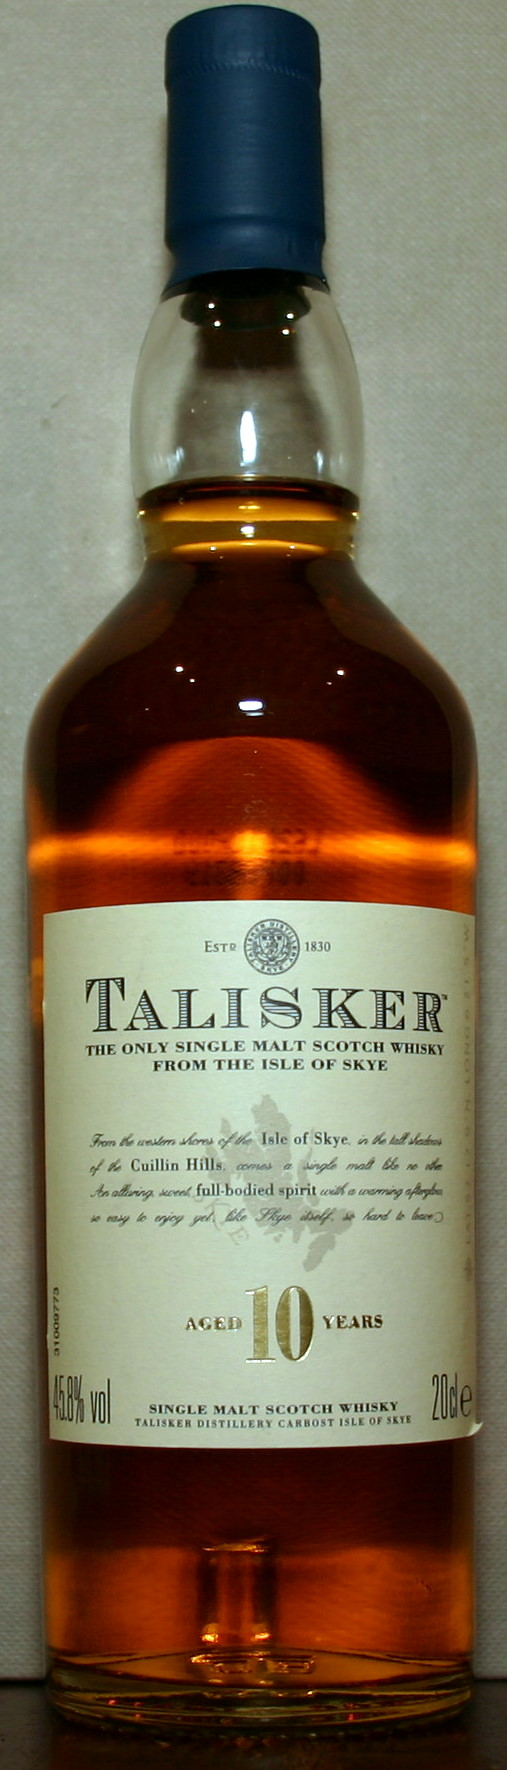 A bottle of Scotch whisky